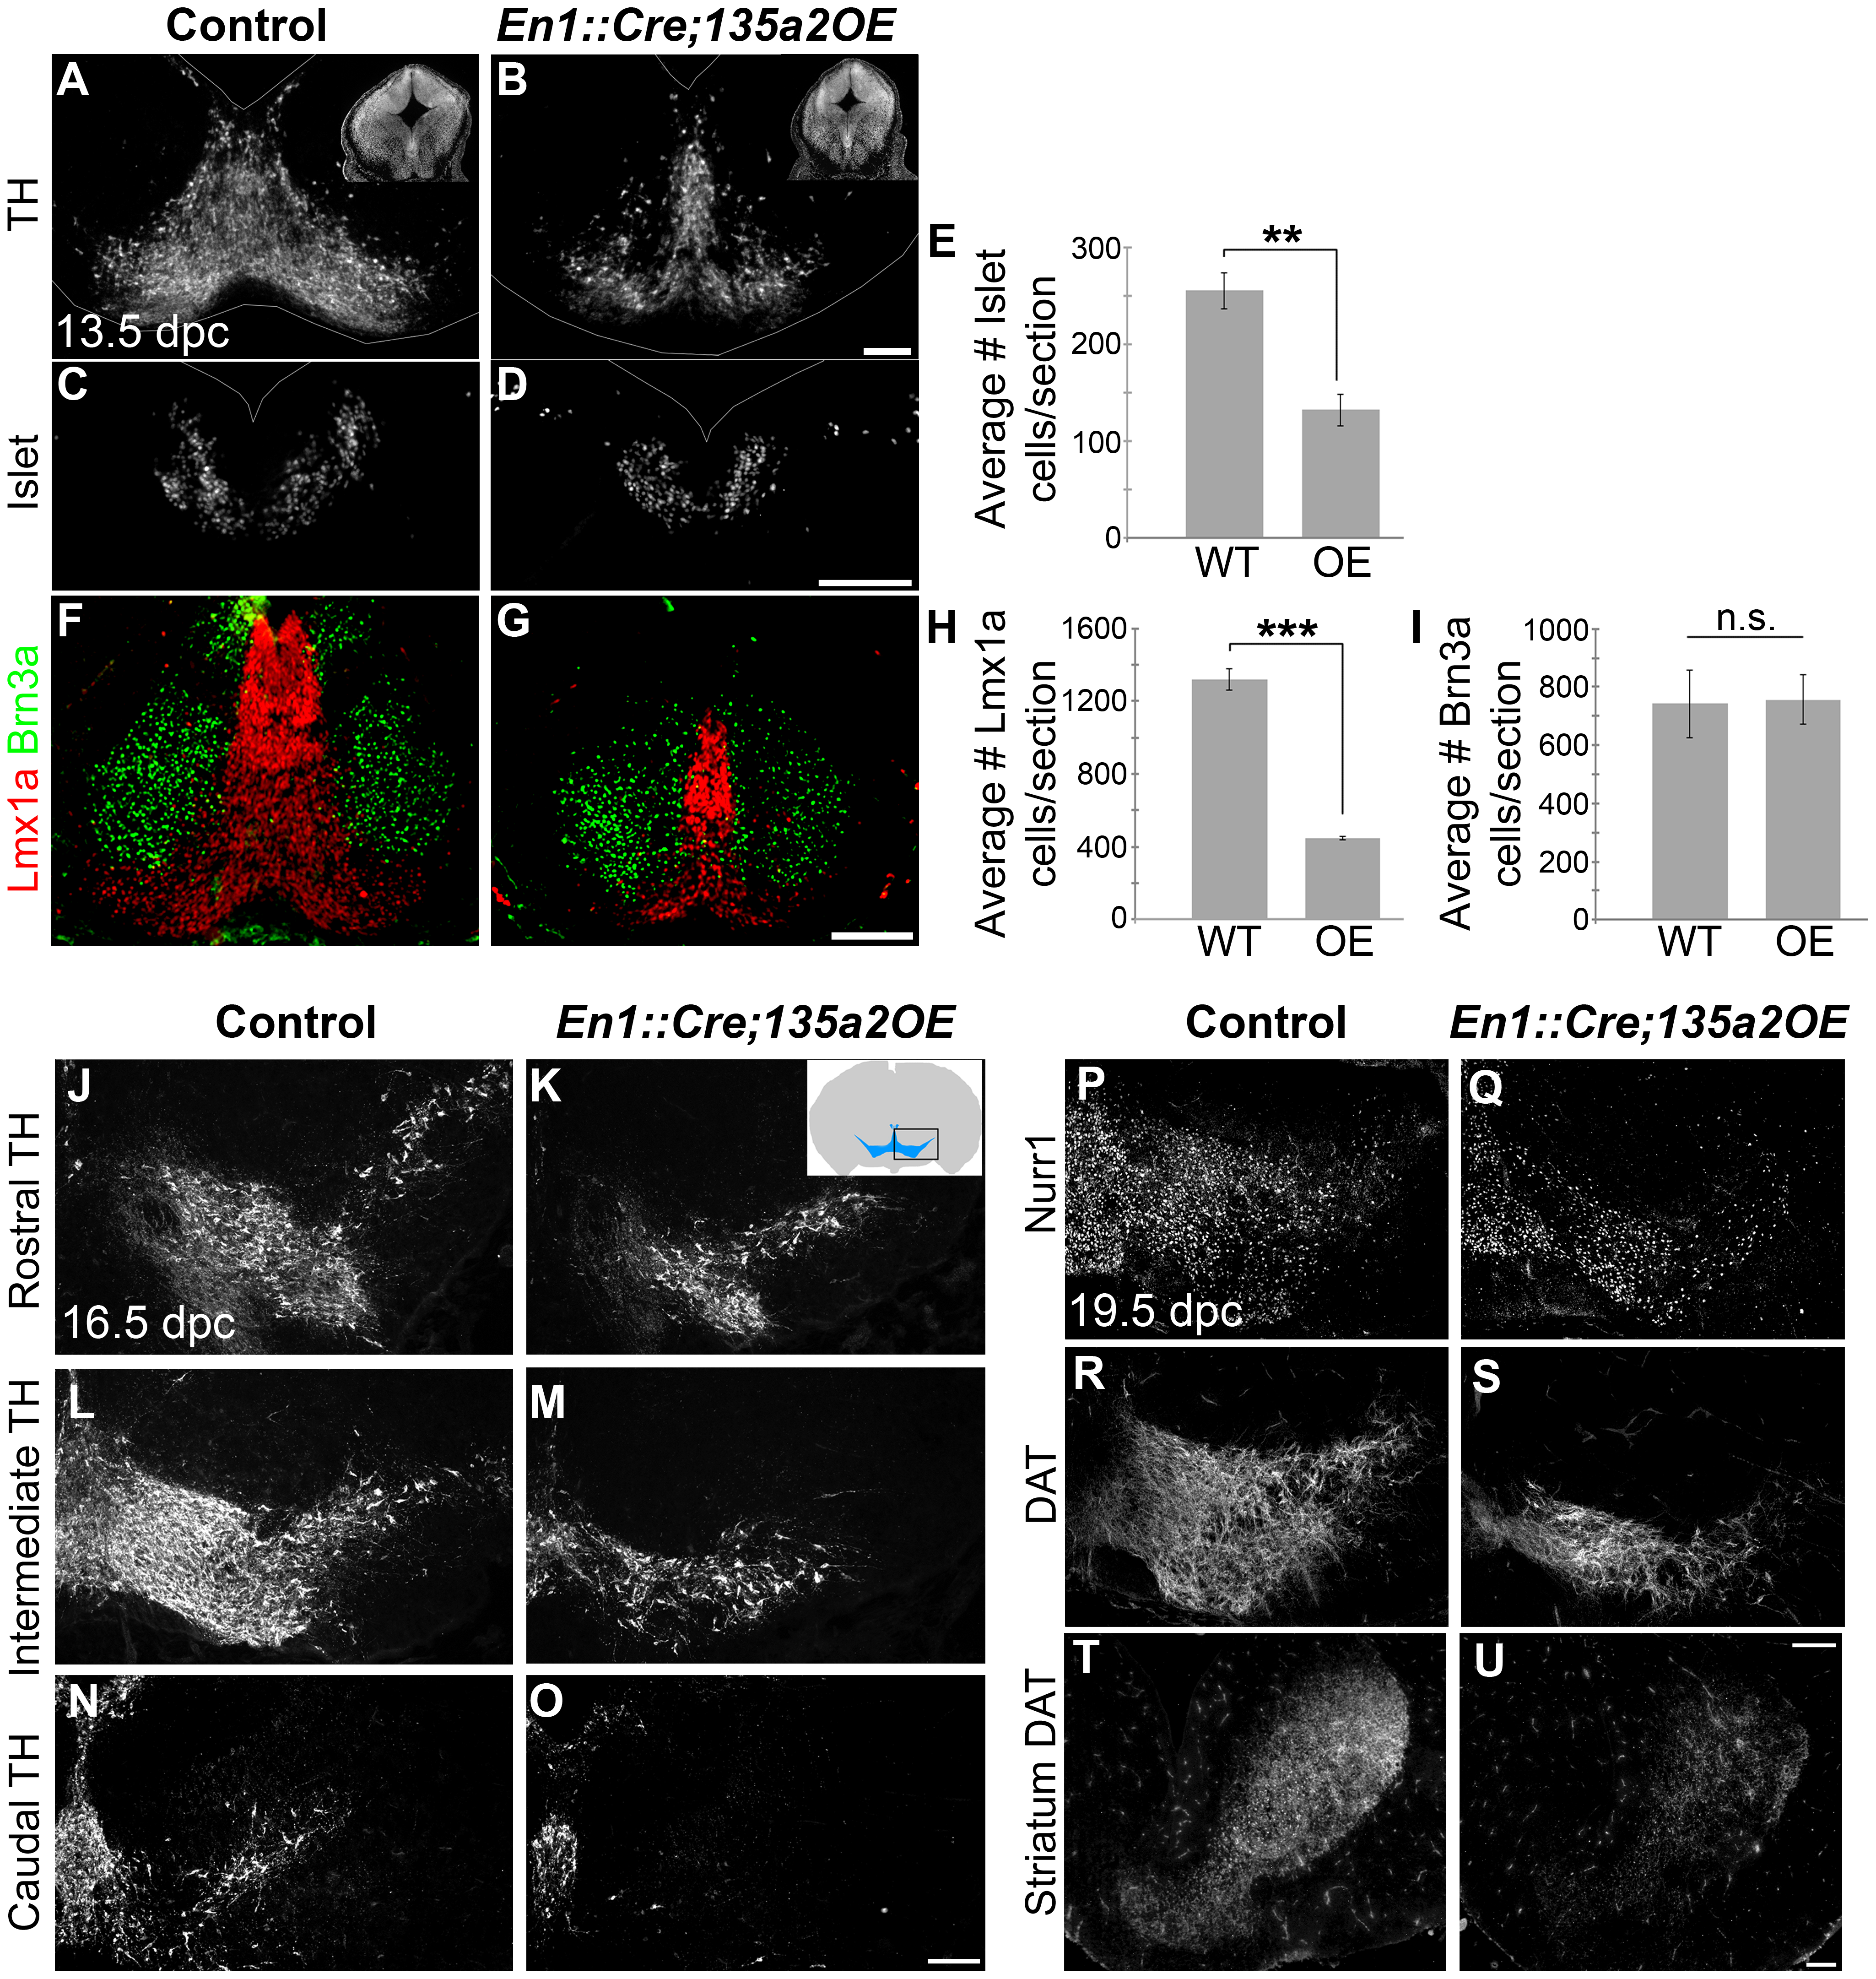 Reduced numbers of mDAs in <i>En1::Cre;135a2OE</i> embryos.